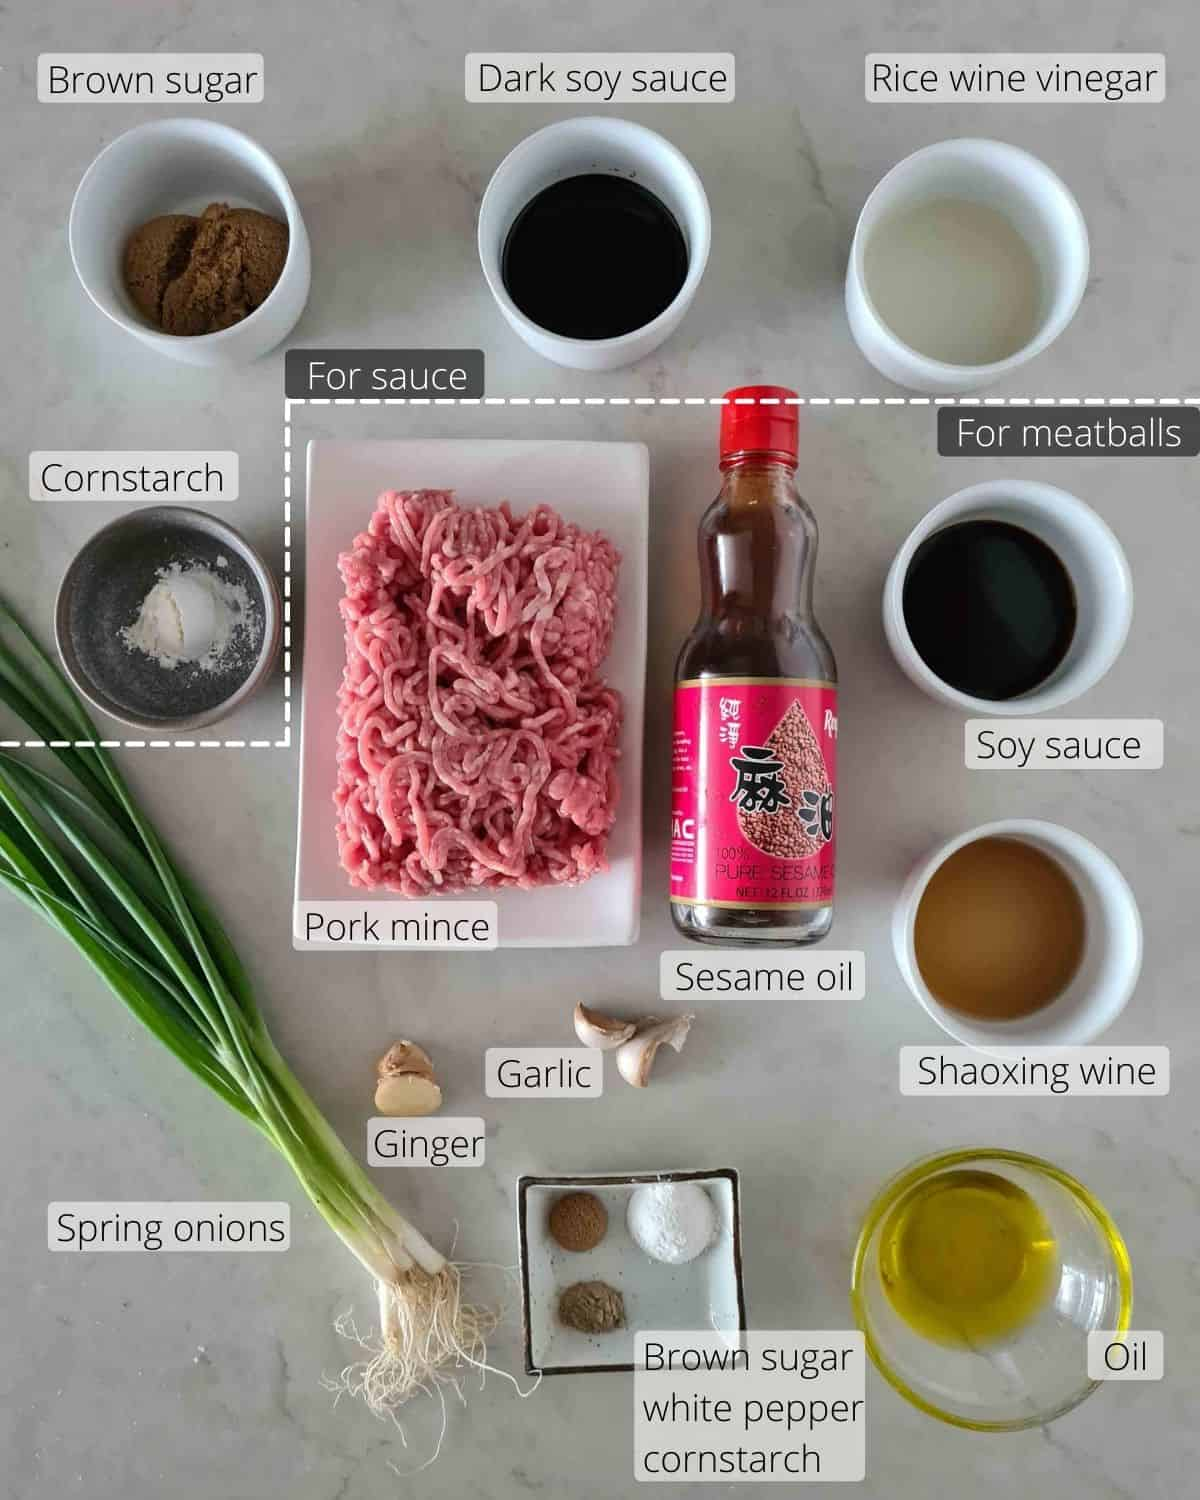 All the ingredients required for this recipe